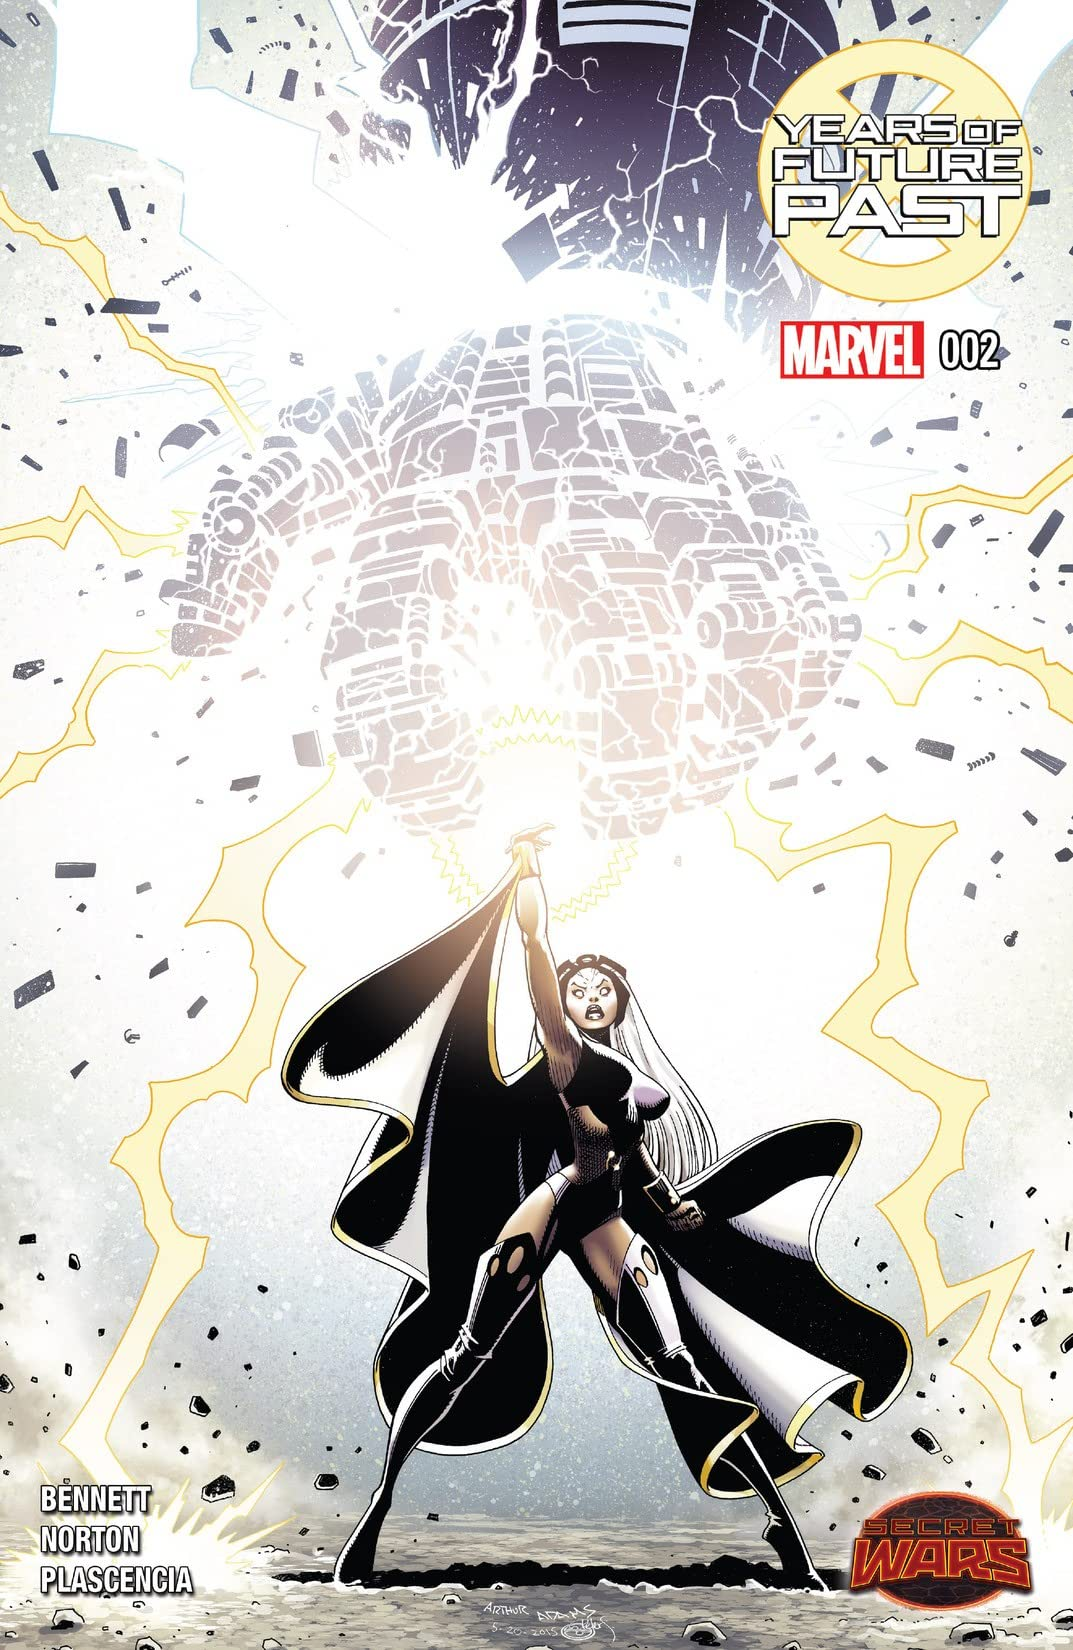 Years Of Future Past (2015) #2